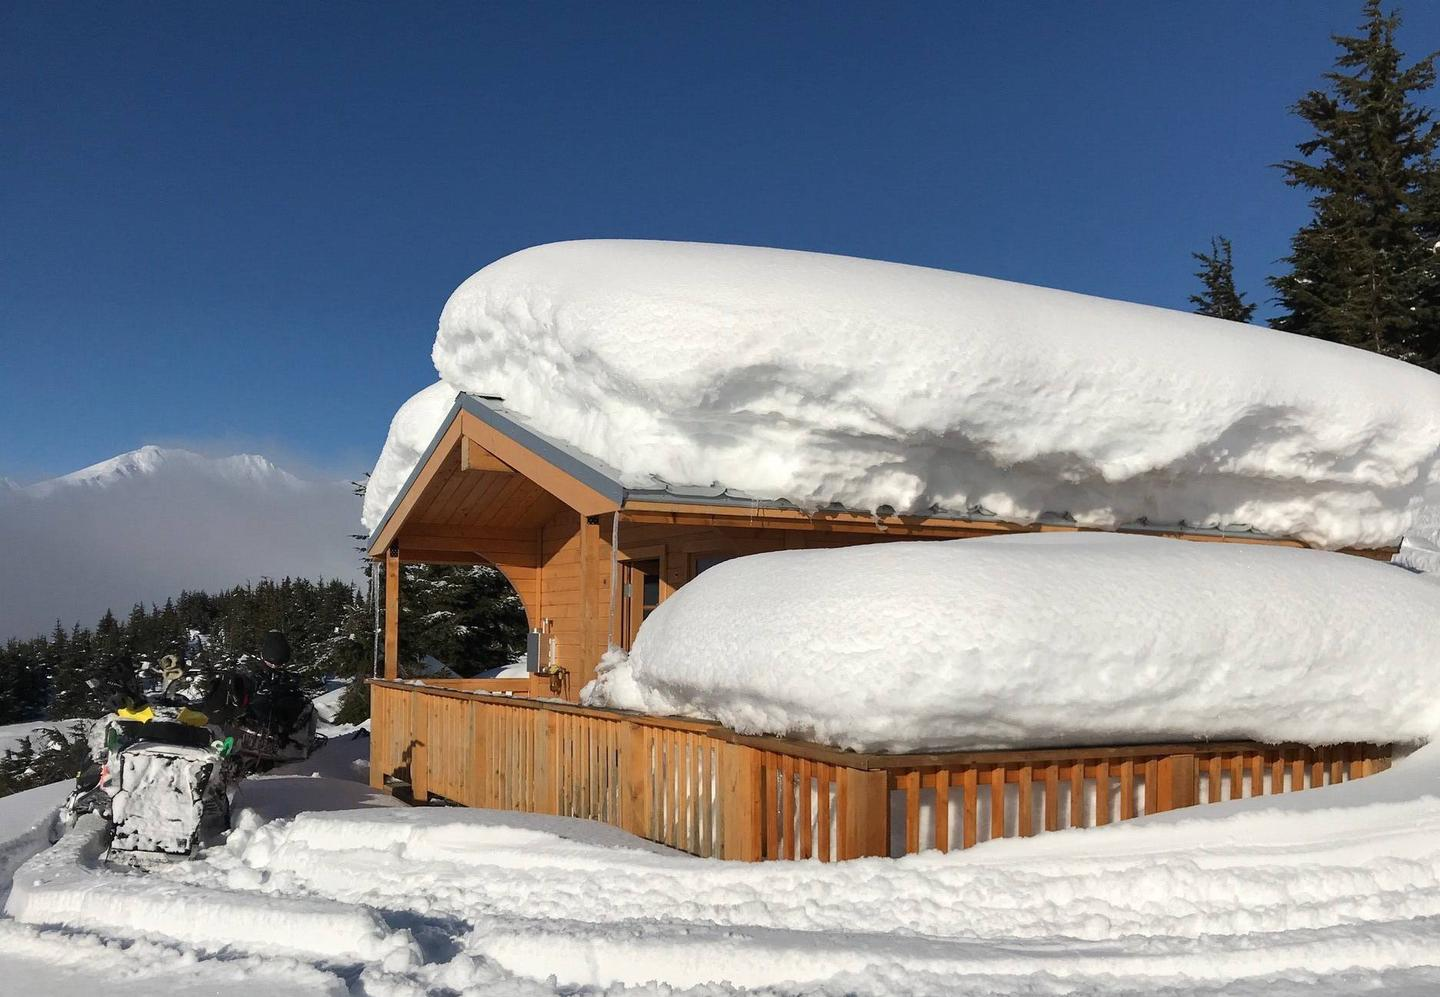 SBC is accessible via snowmobile on a good snow year.Winter time at Spencer Bench Cabin